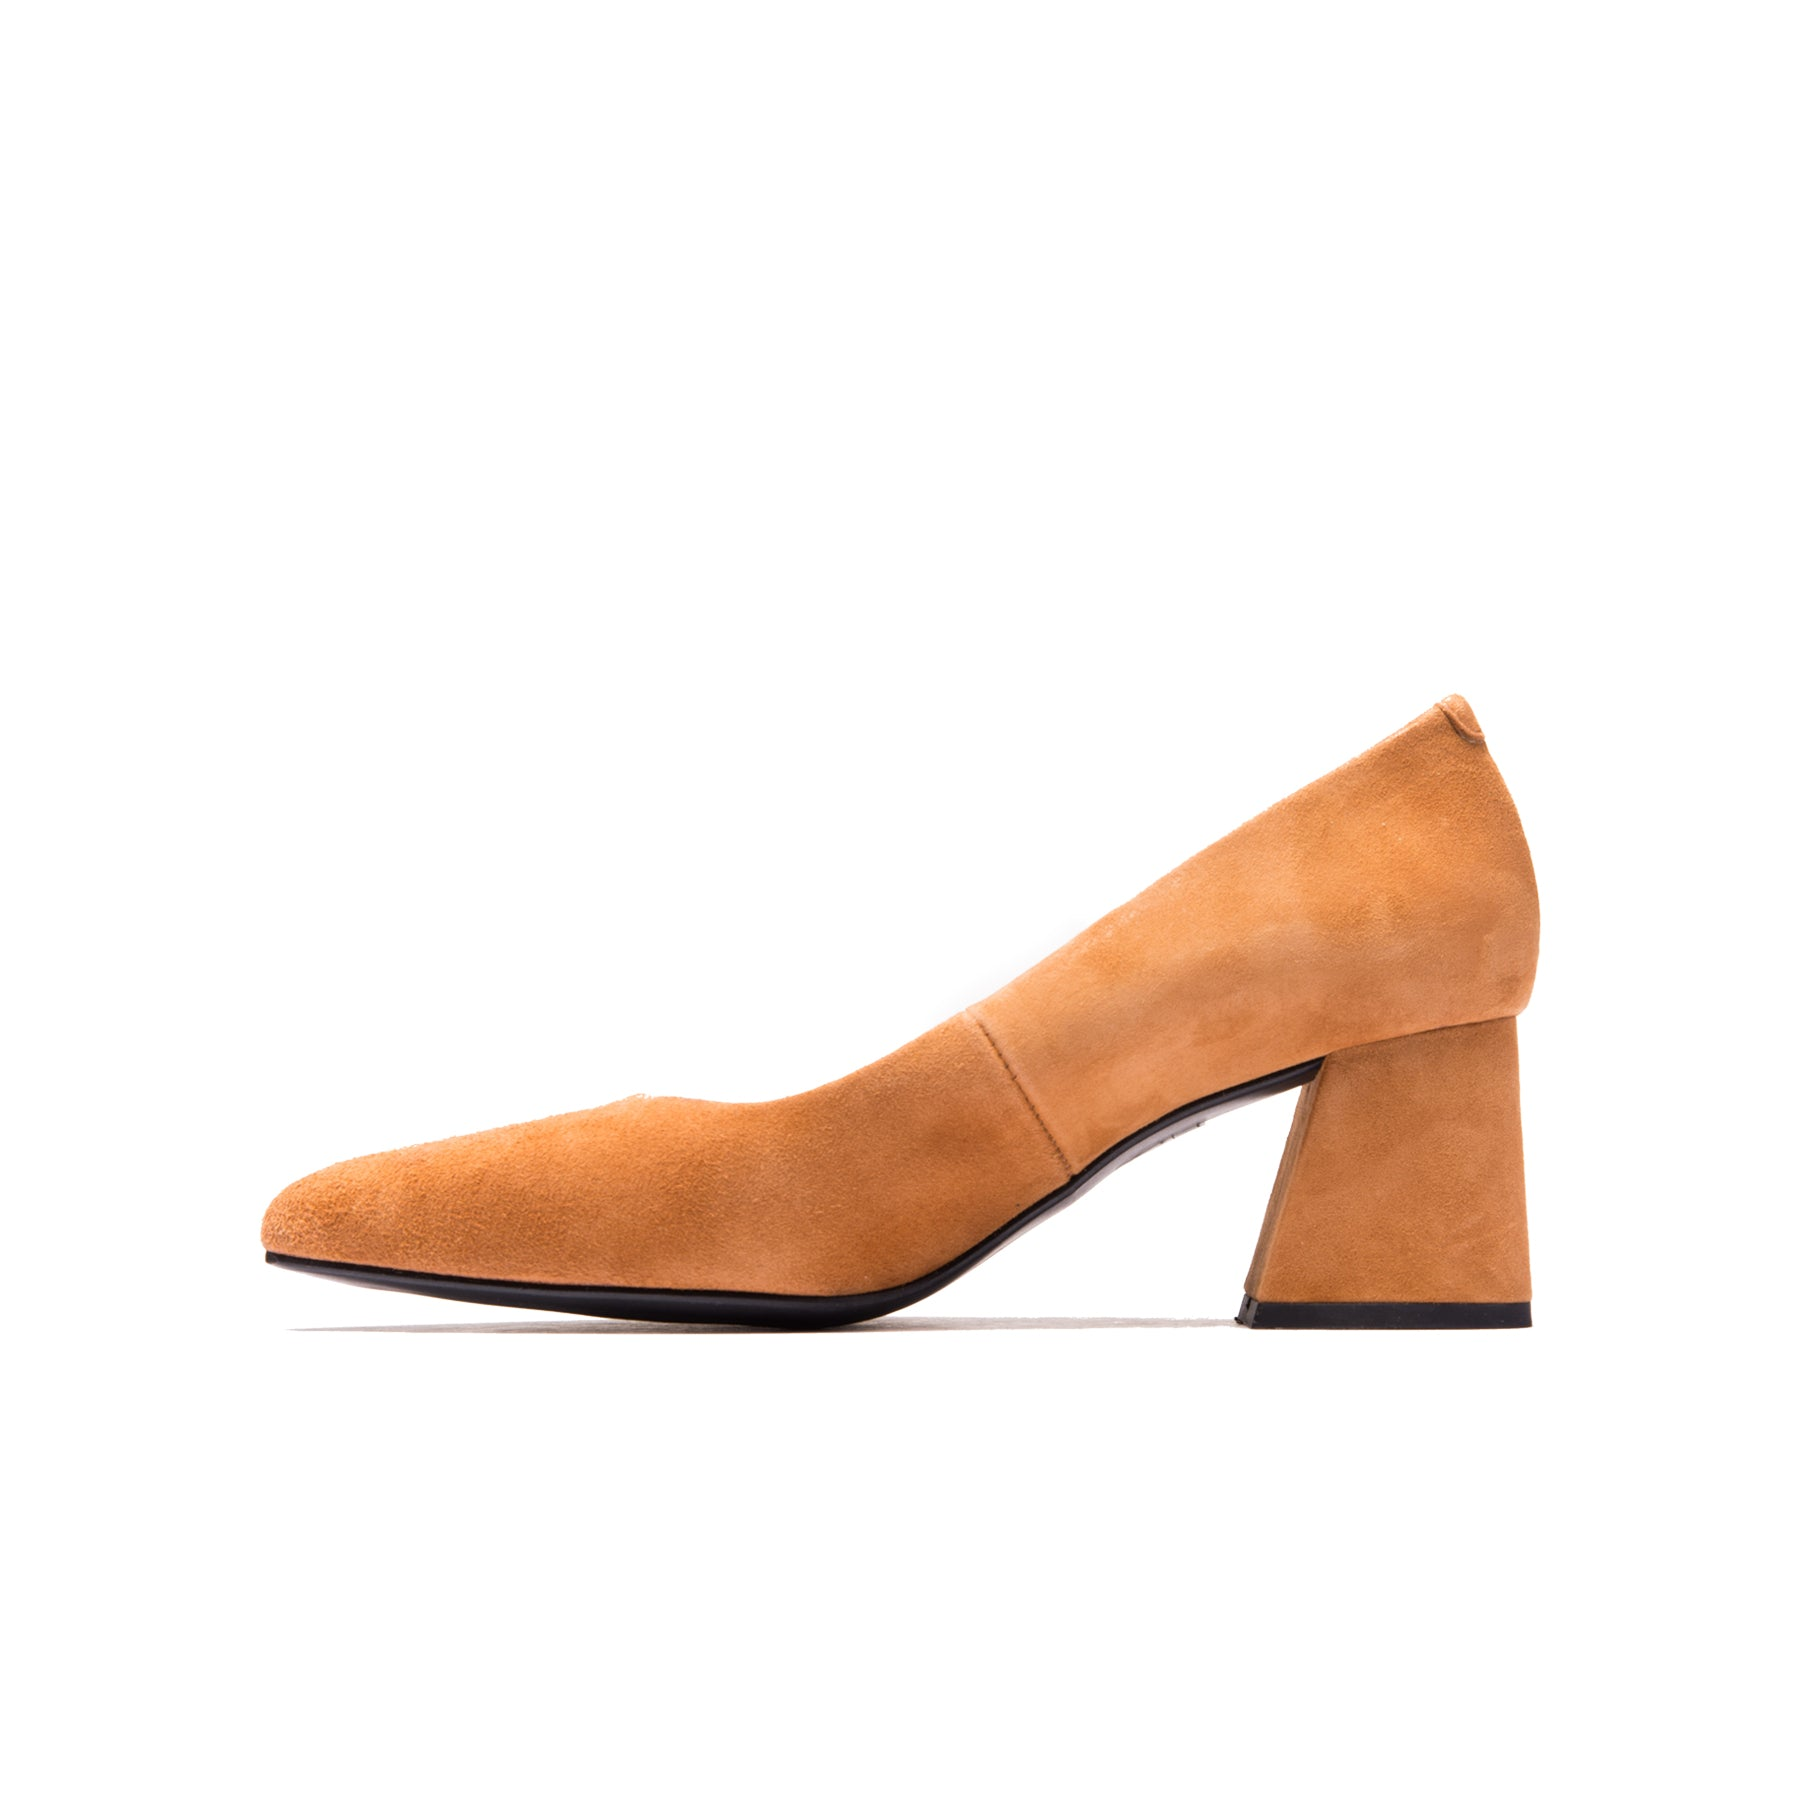 Sharon Tan Suede